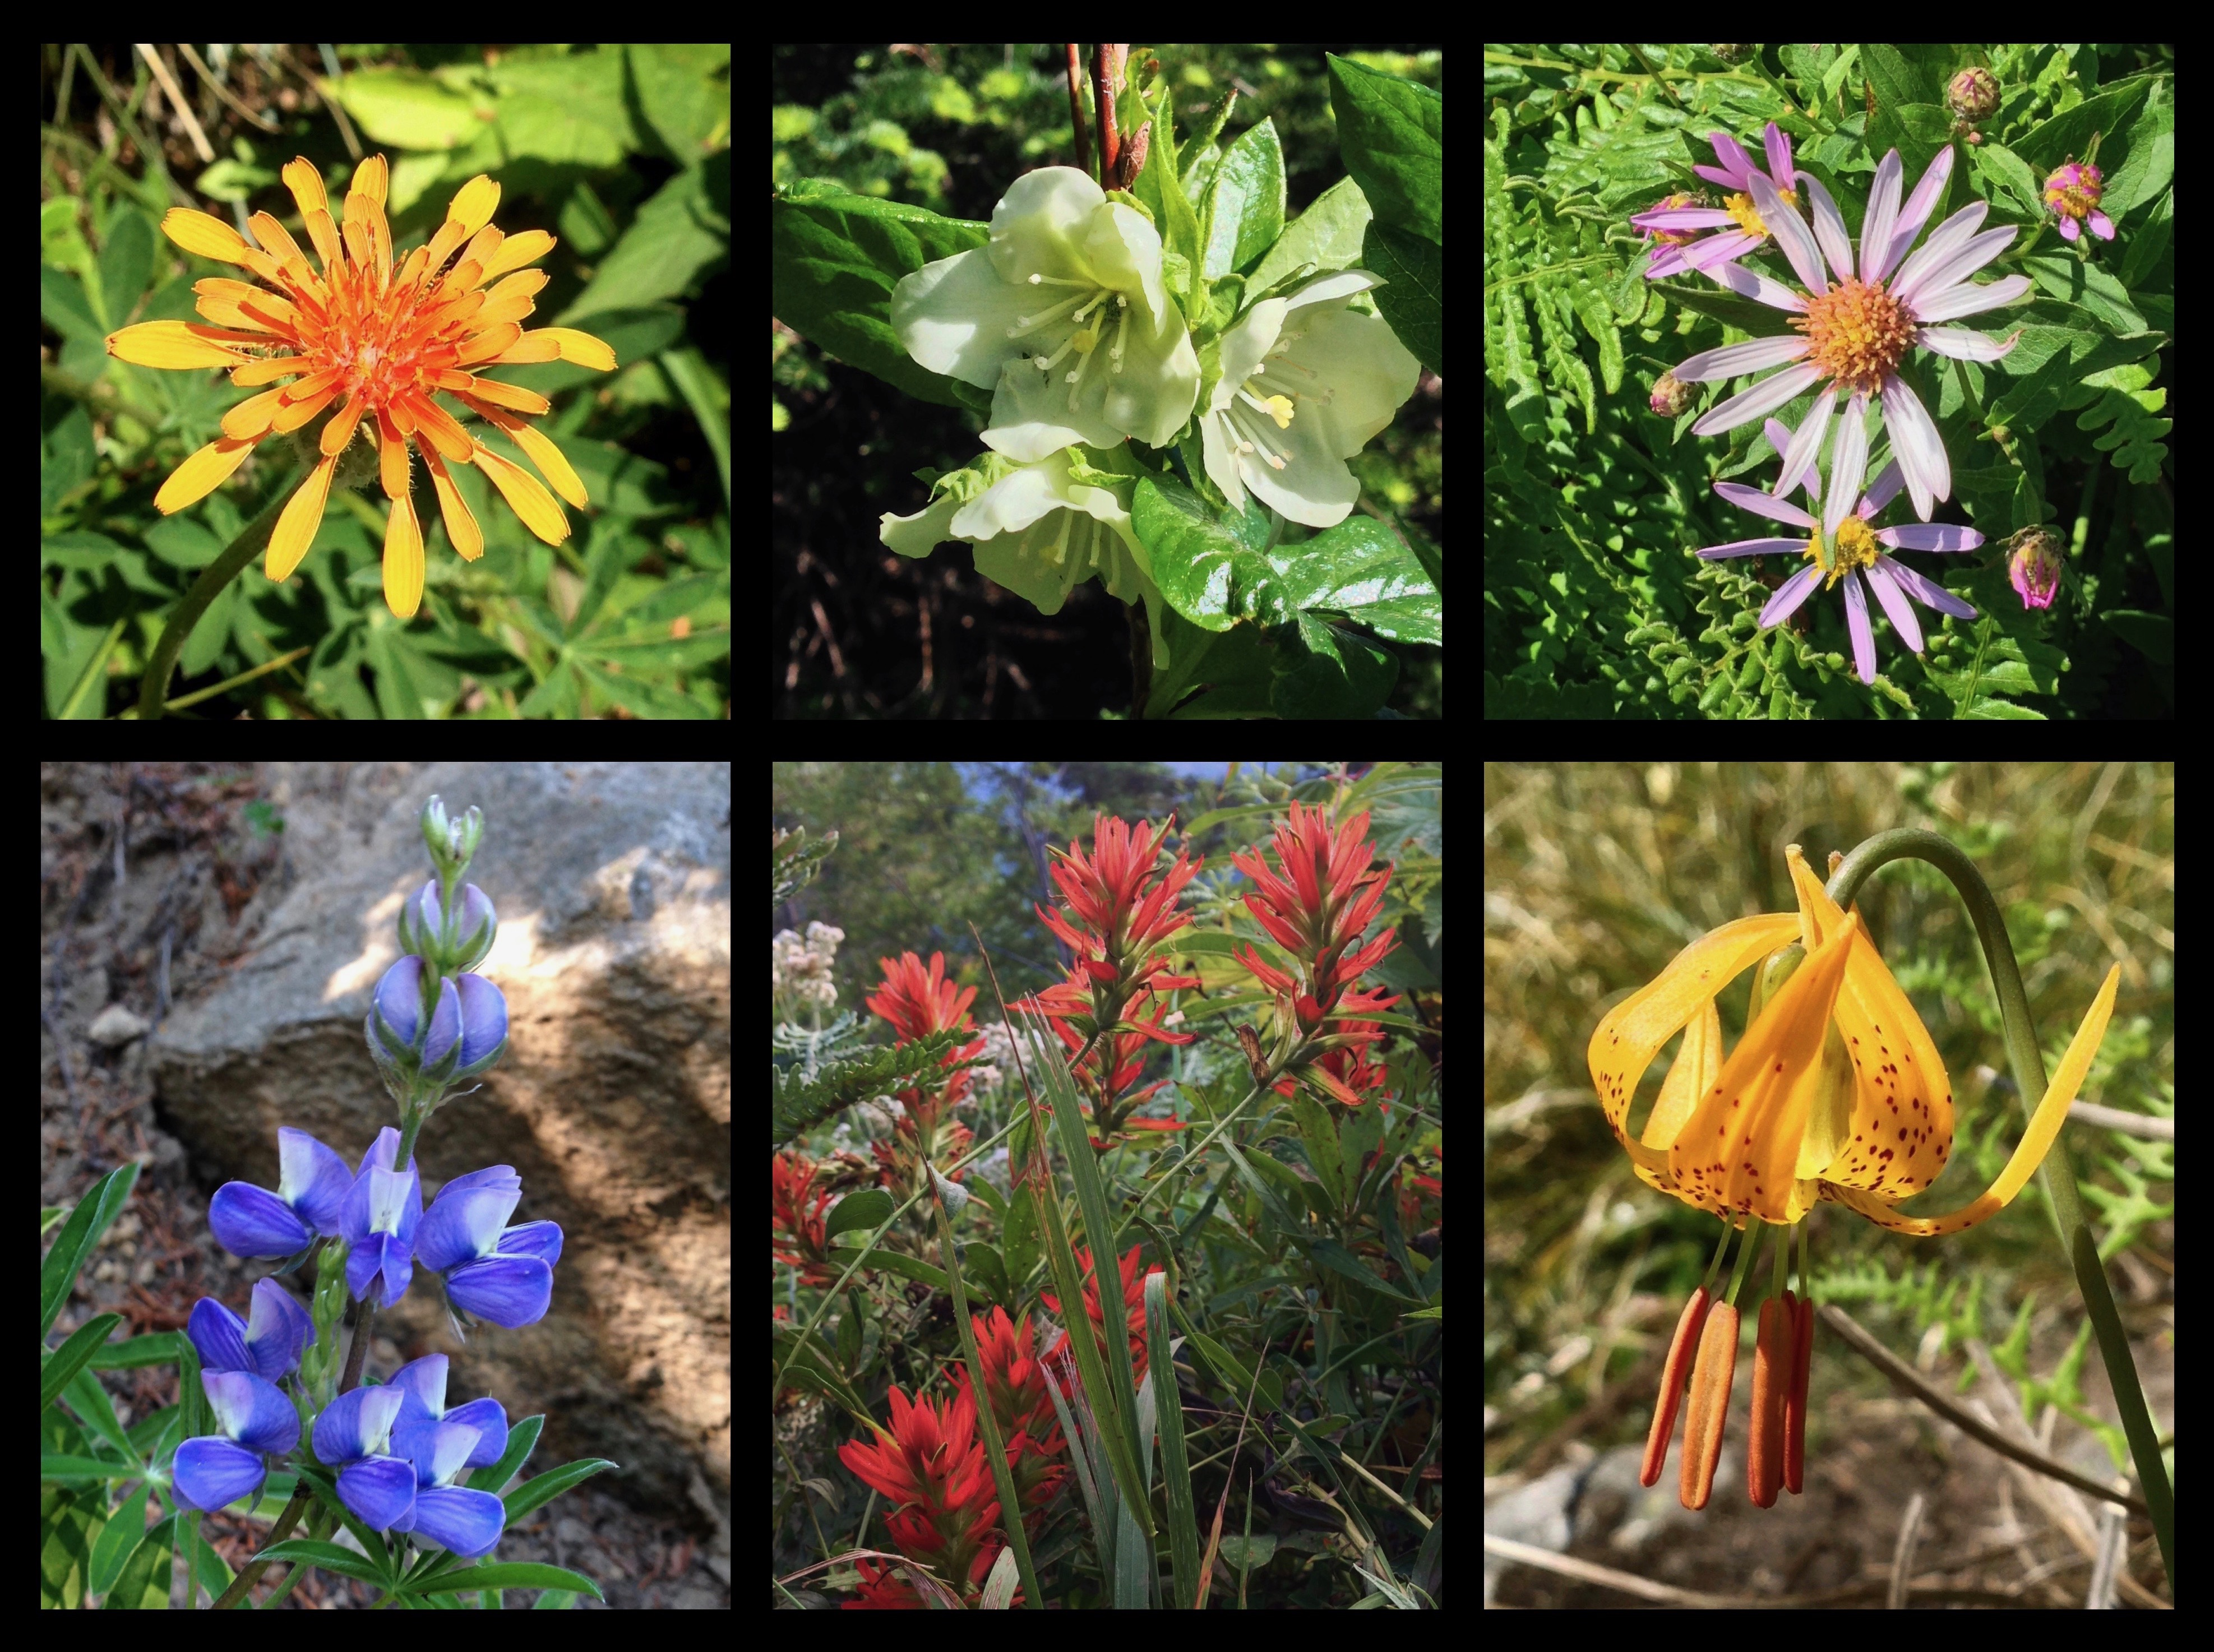 Bandera Mountain's early summer wildflower display dazzles with a palette of blooms including, clockwise from top left, orange agoseris (Agoseris aurantiaca), white rhododendron (Rhododendron albiflorum), Cascade aster (Eucephalus ledophyllus), Columbia lily (Lilium columbianum), scarlet paintbrush (Castilleja miniata), and lupine (Lupinus sp.). Bandera Mountain Trail, August 18, 2013 and July 09, 2014.